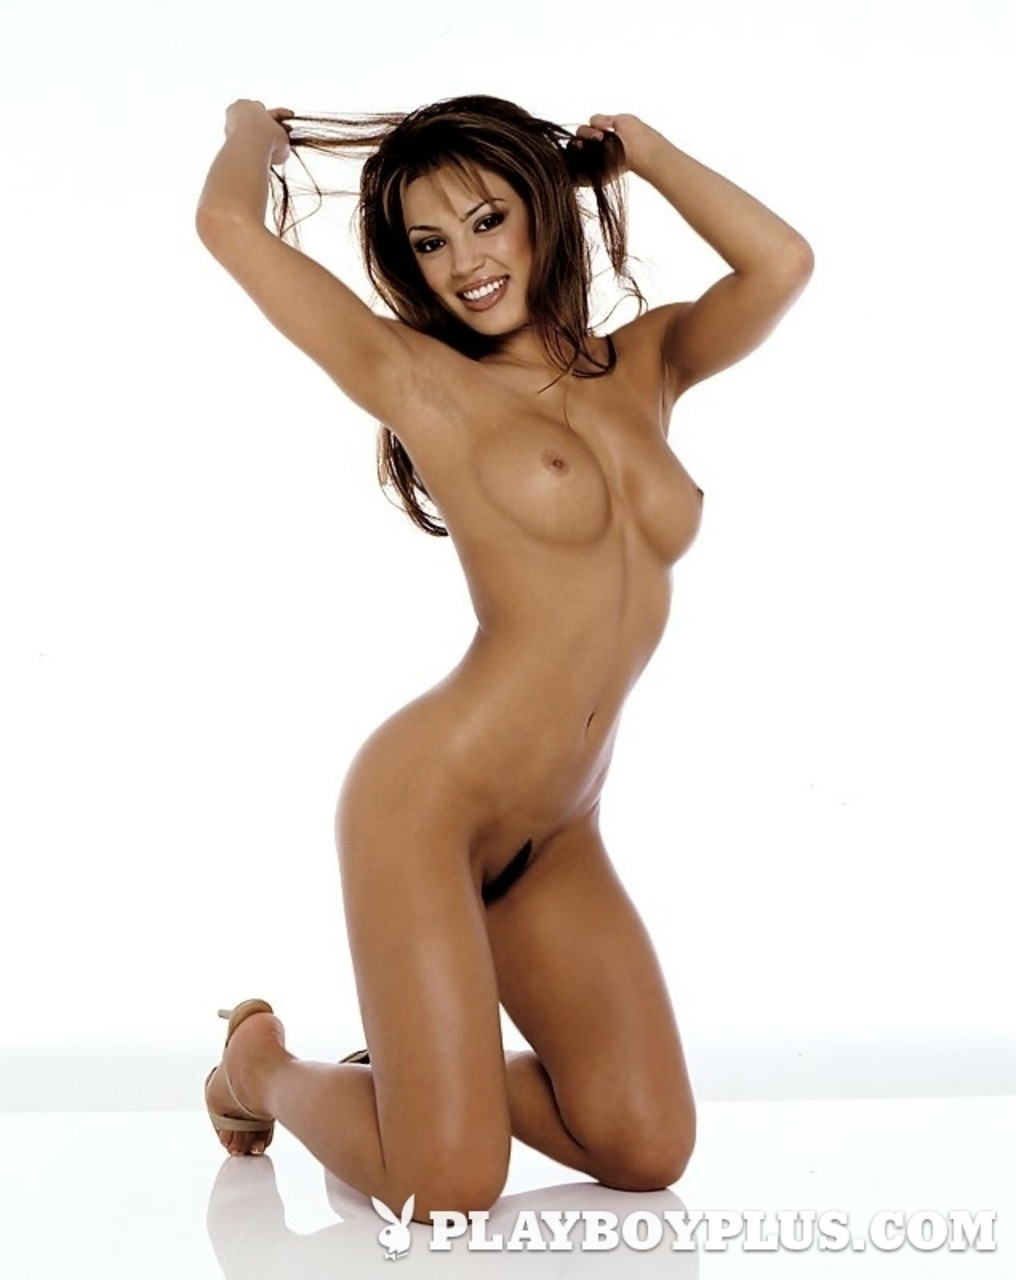 A nice compilation of gorgeous chicks with amazing curves in nude